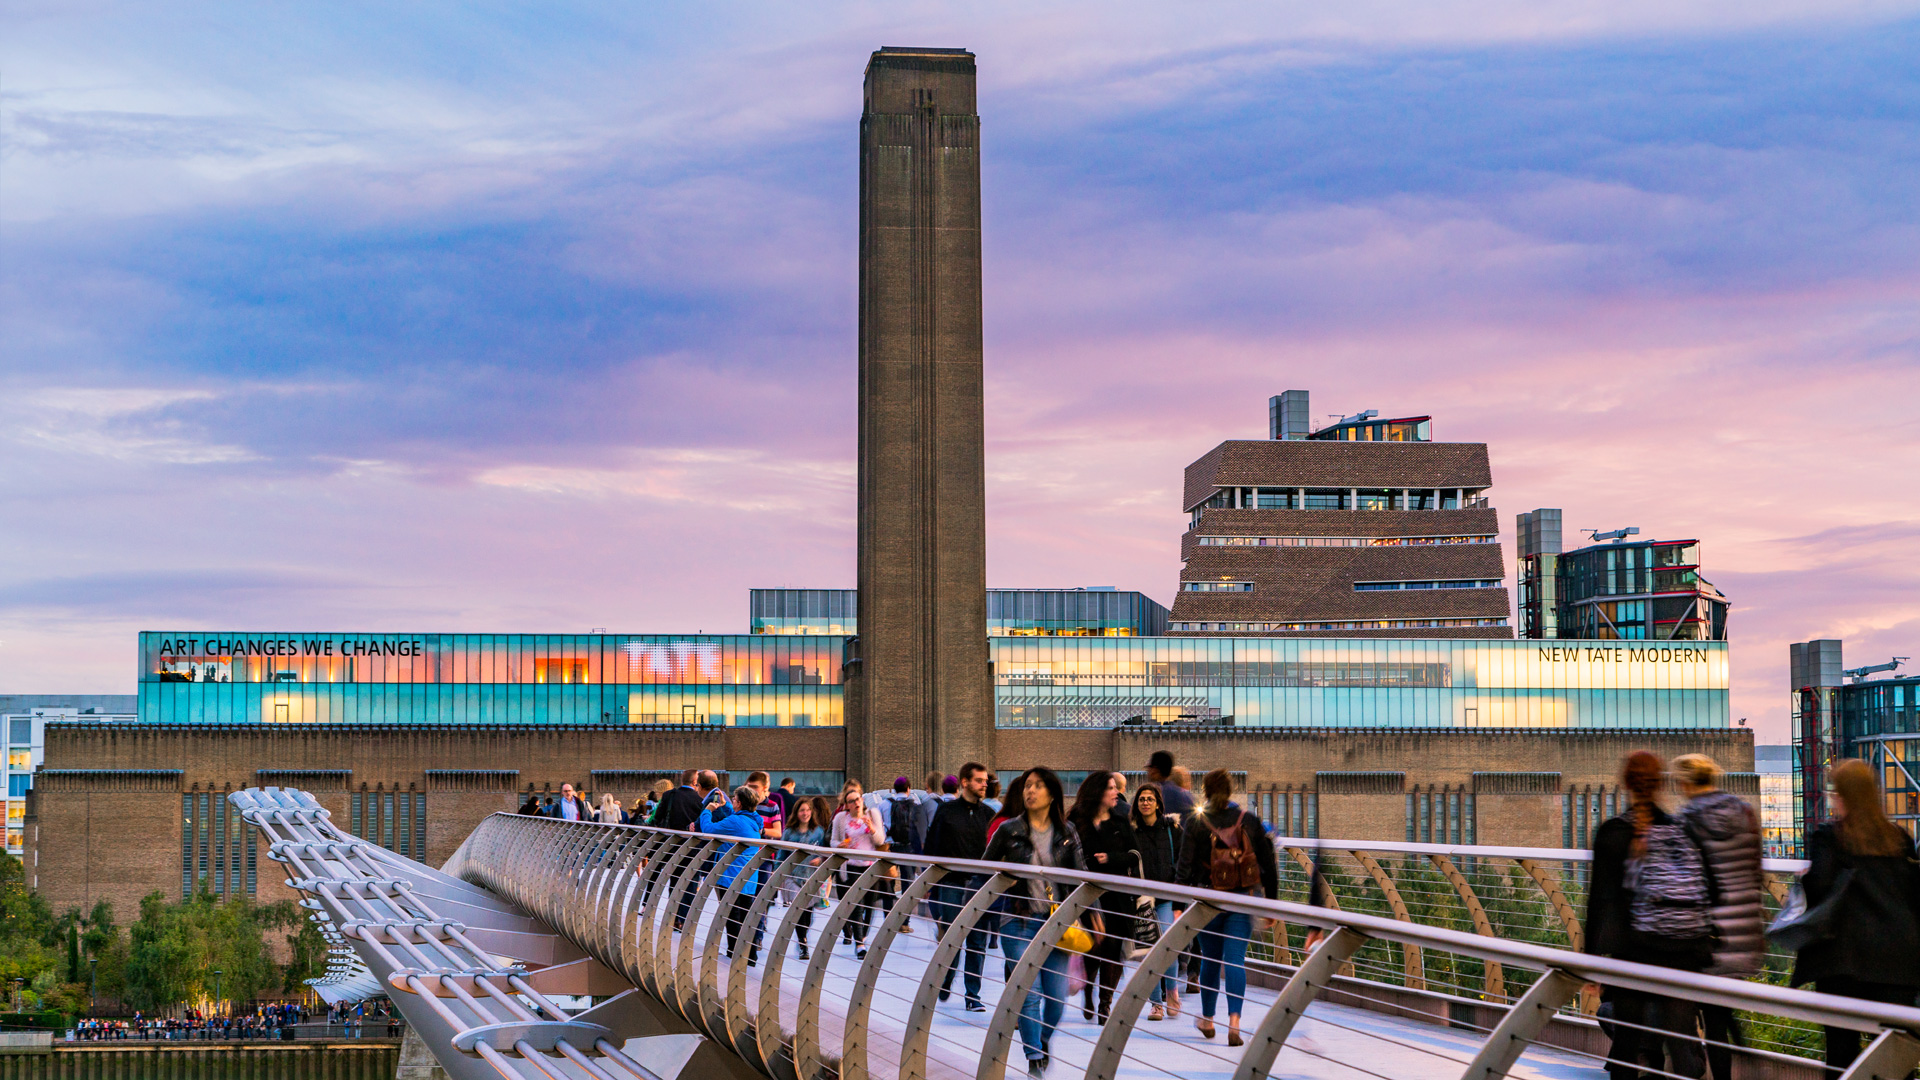 The Tate Modern in the background with people walking across the Millenium Bridge with a violet tinged sky above